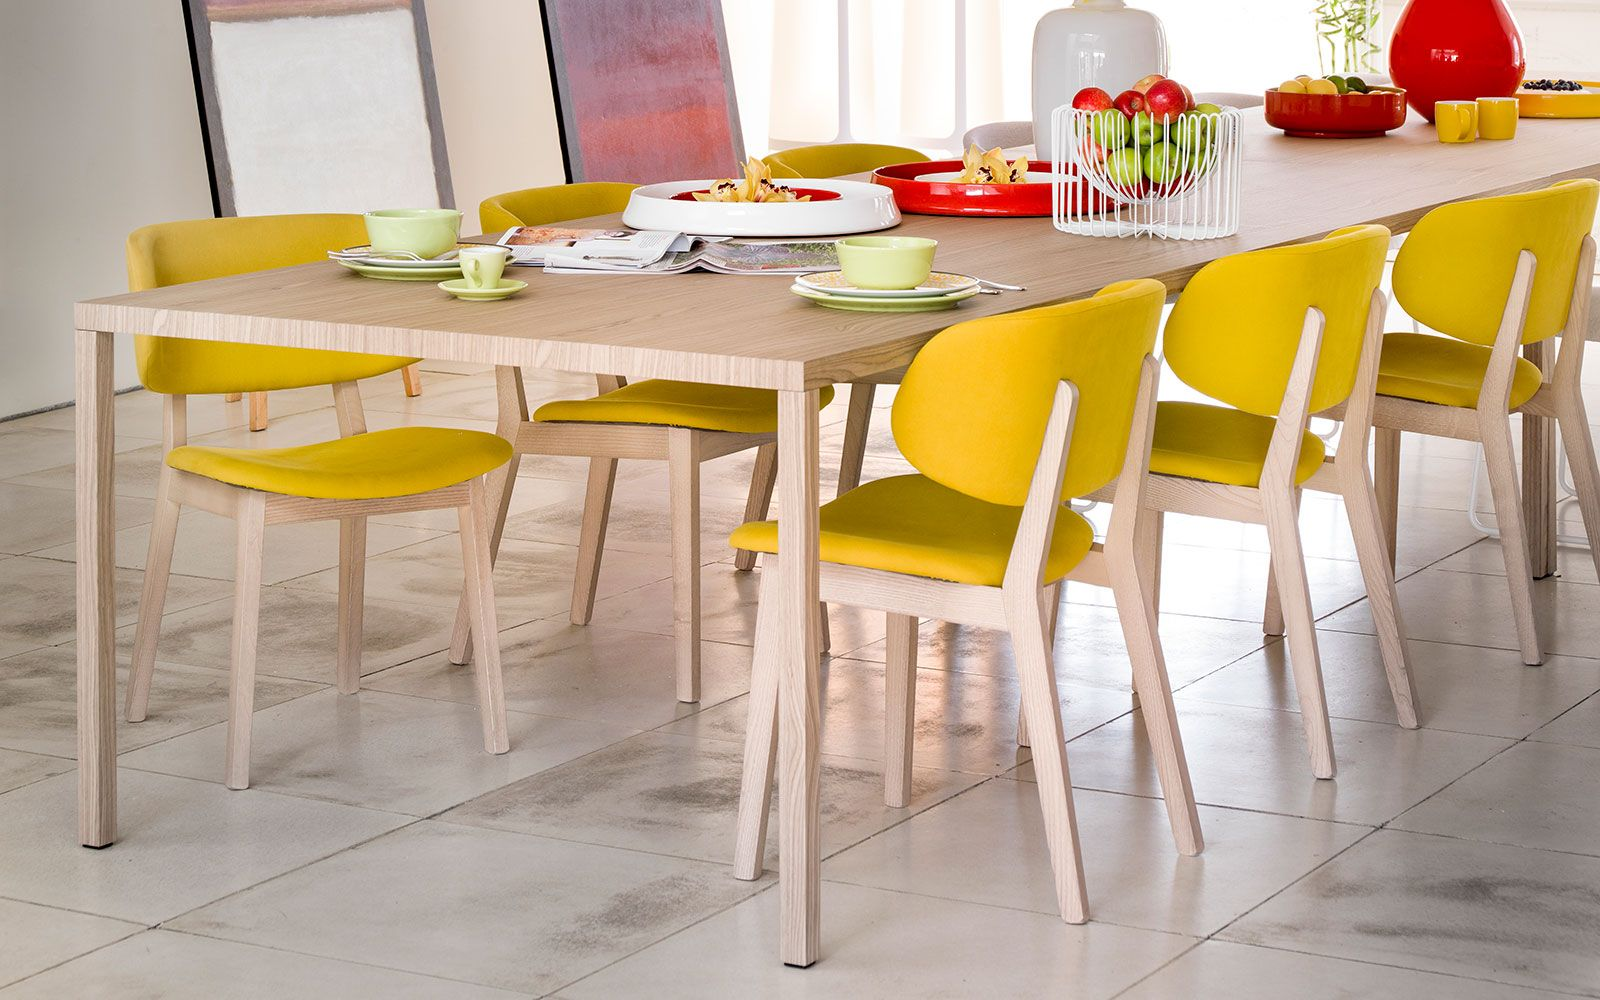 Wooden chair with large backrest claire calligaris cslh